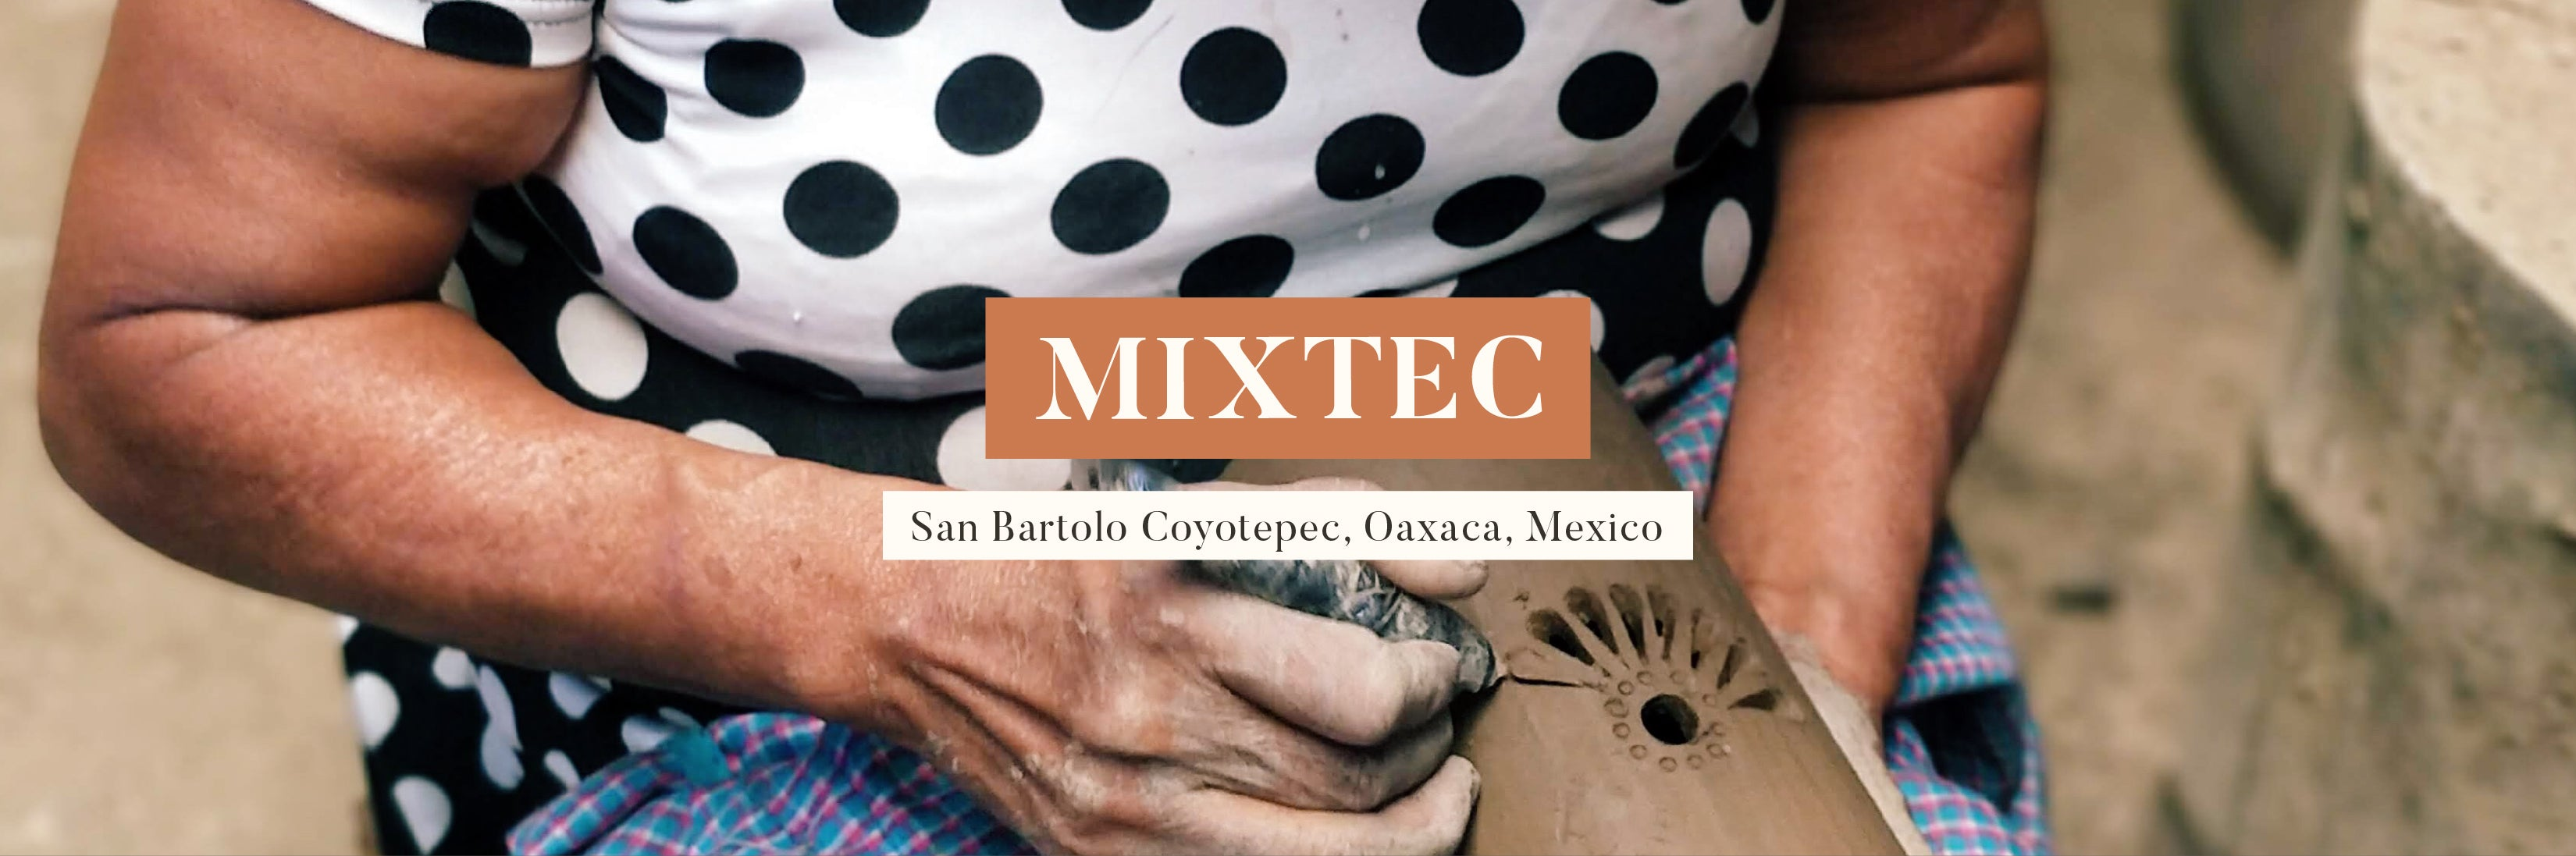 The Mixtec